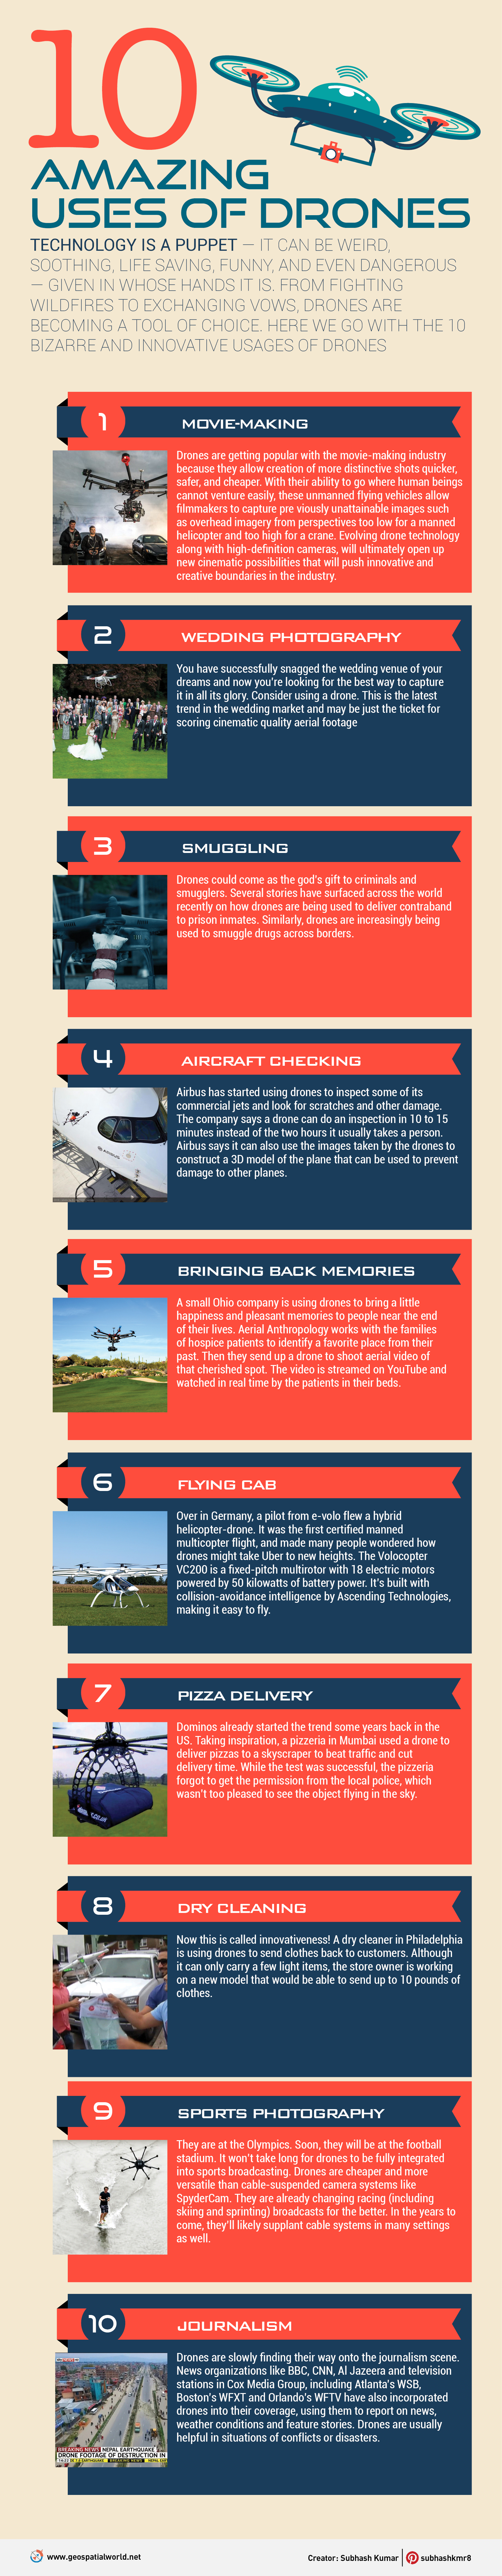 10 amazing uses of drones